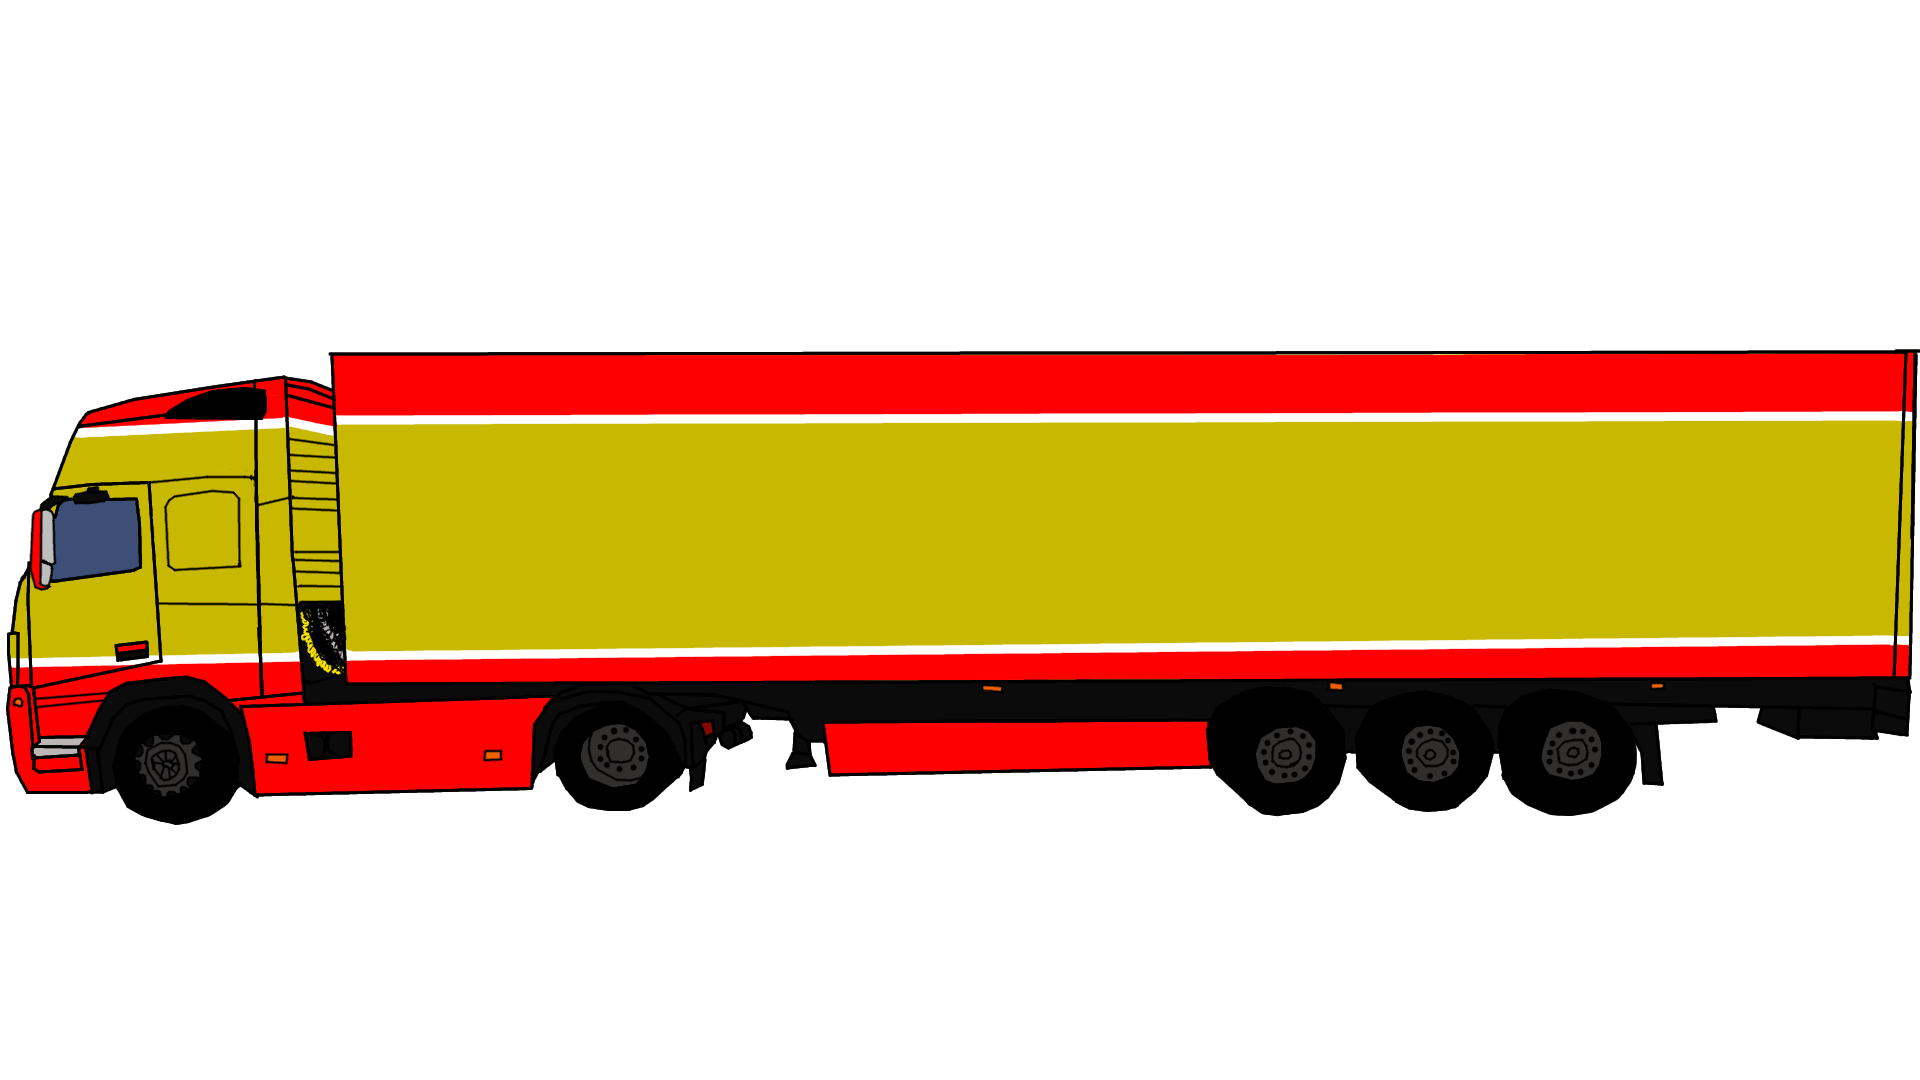 Peterbilt Clipart at GetDrawings.com | Free for personal use ... graphic transparent download